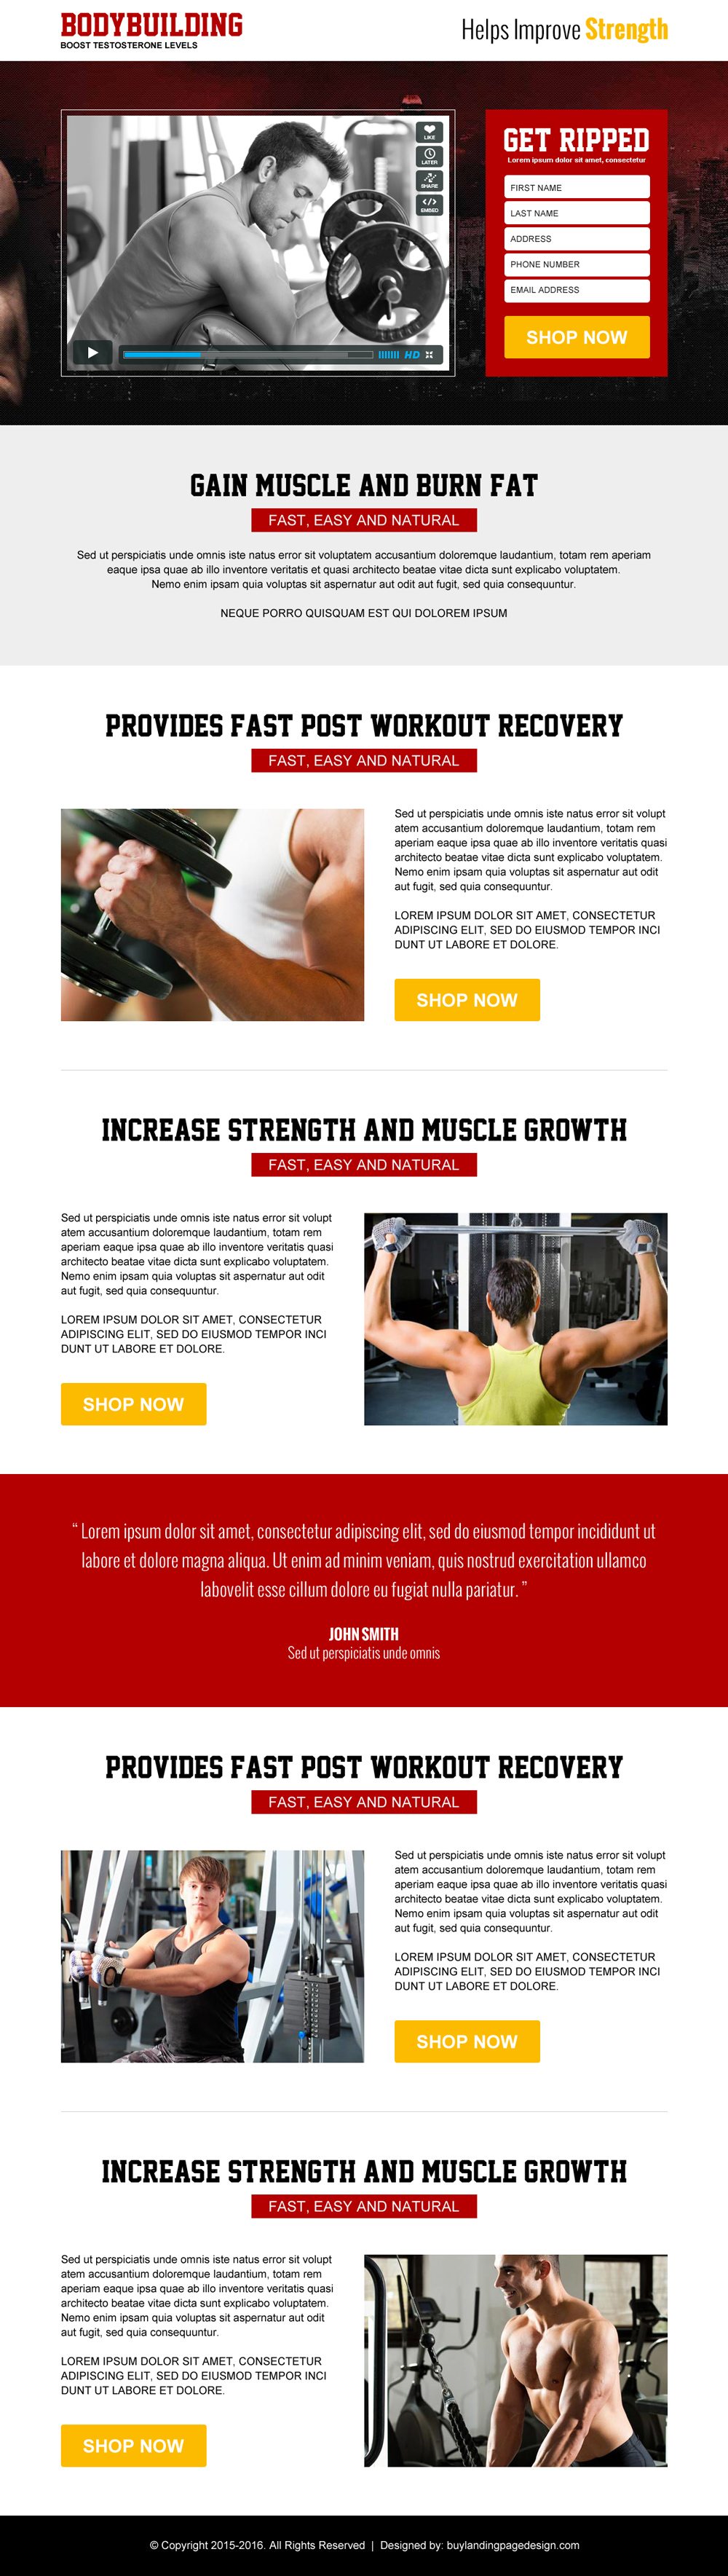 bodybuilding-business-service-lead-generation-converting-video-landing-page-design-017